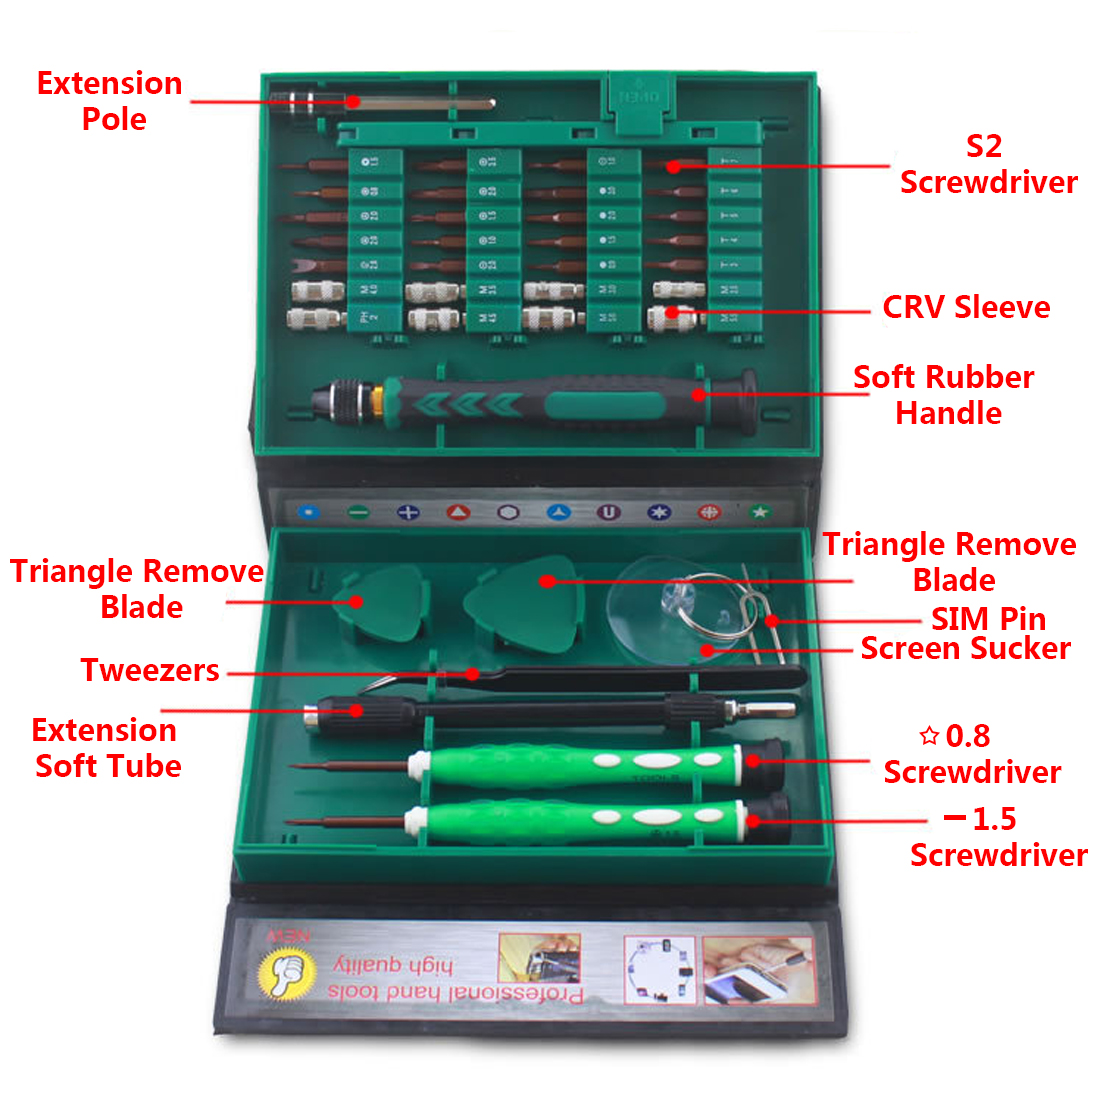 Best Multifunction 38 in 1 Precision Screwdriver with Disassemble Tool and Plastic Storage Box for Mobile Phone / Laptop Repair